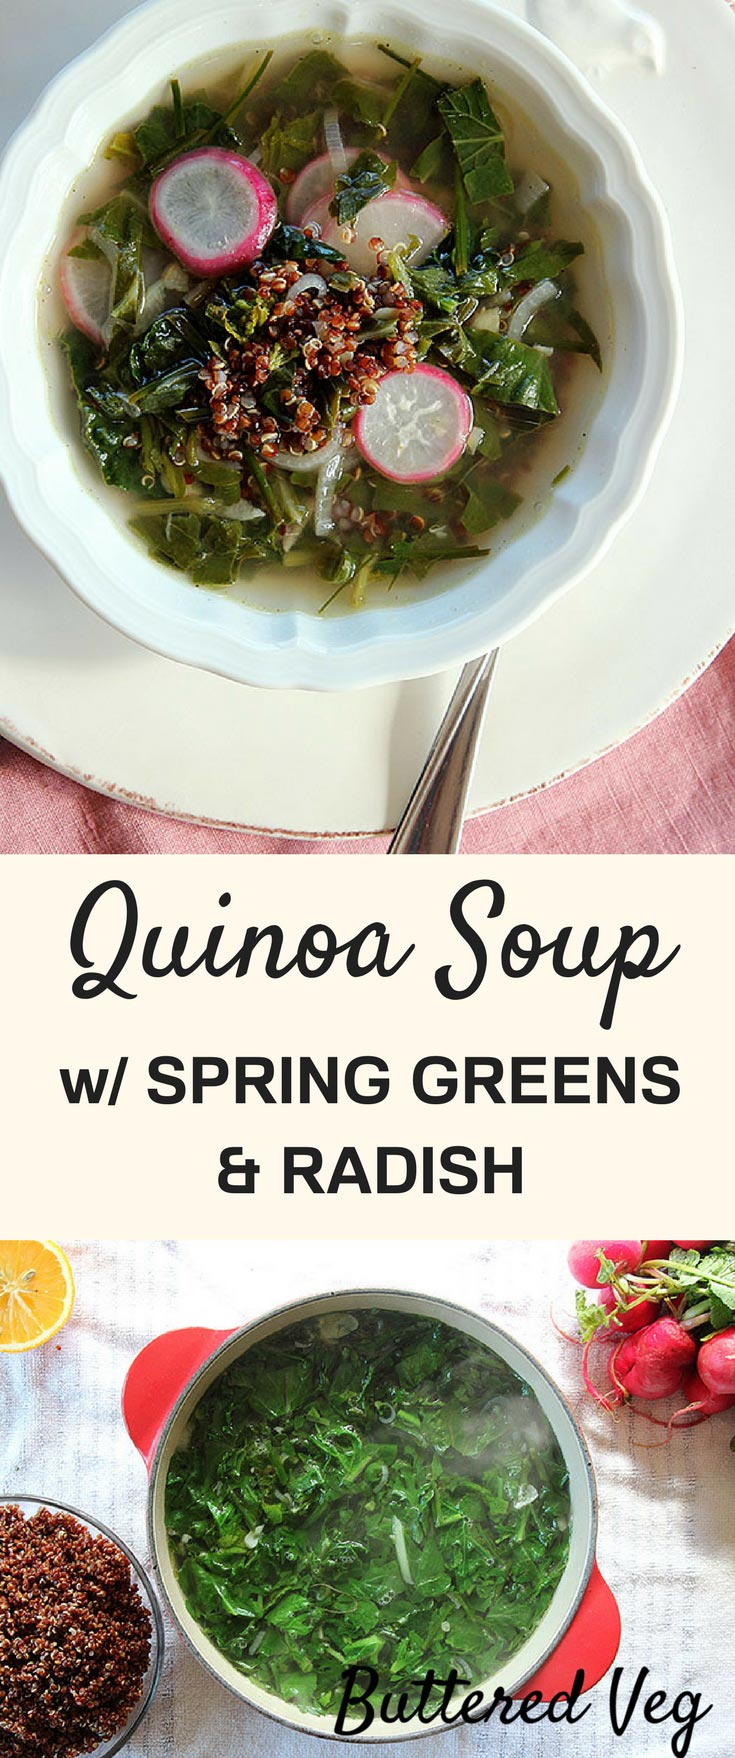 Quinoa Soup With Spring Greens & Radish